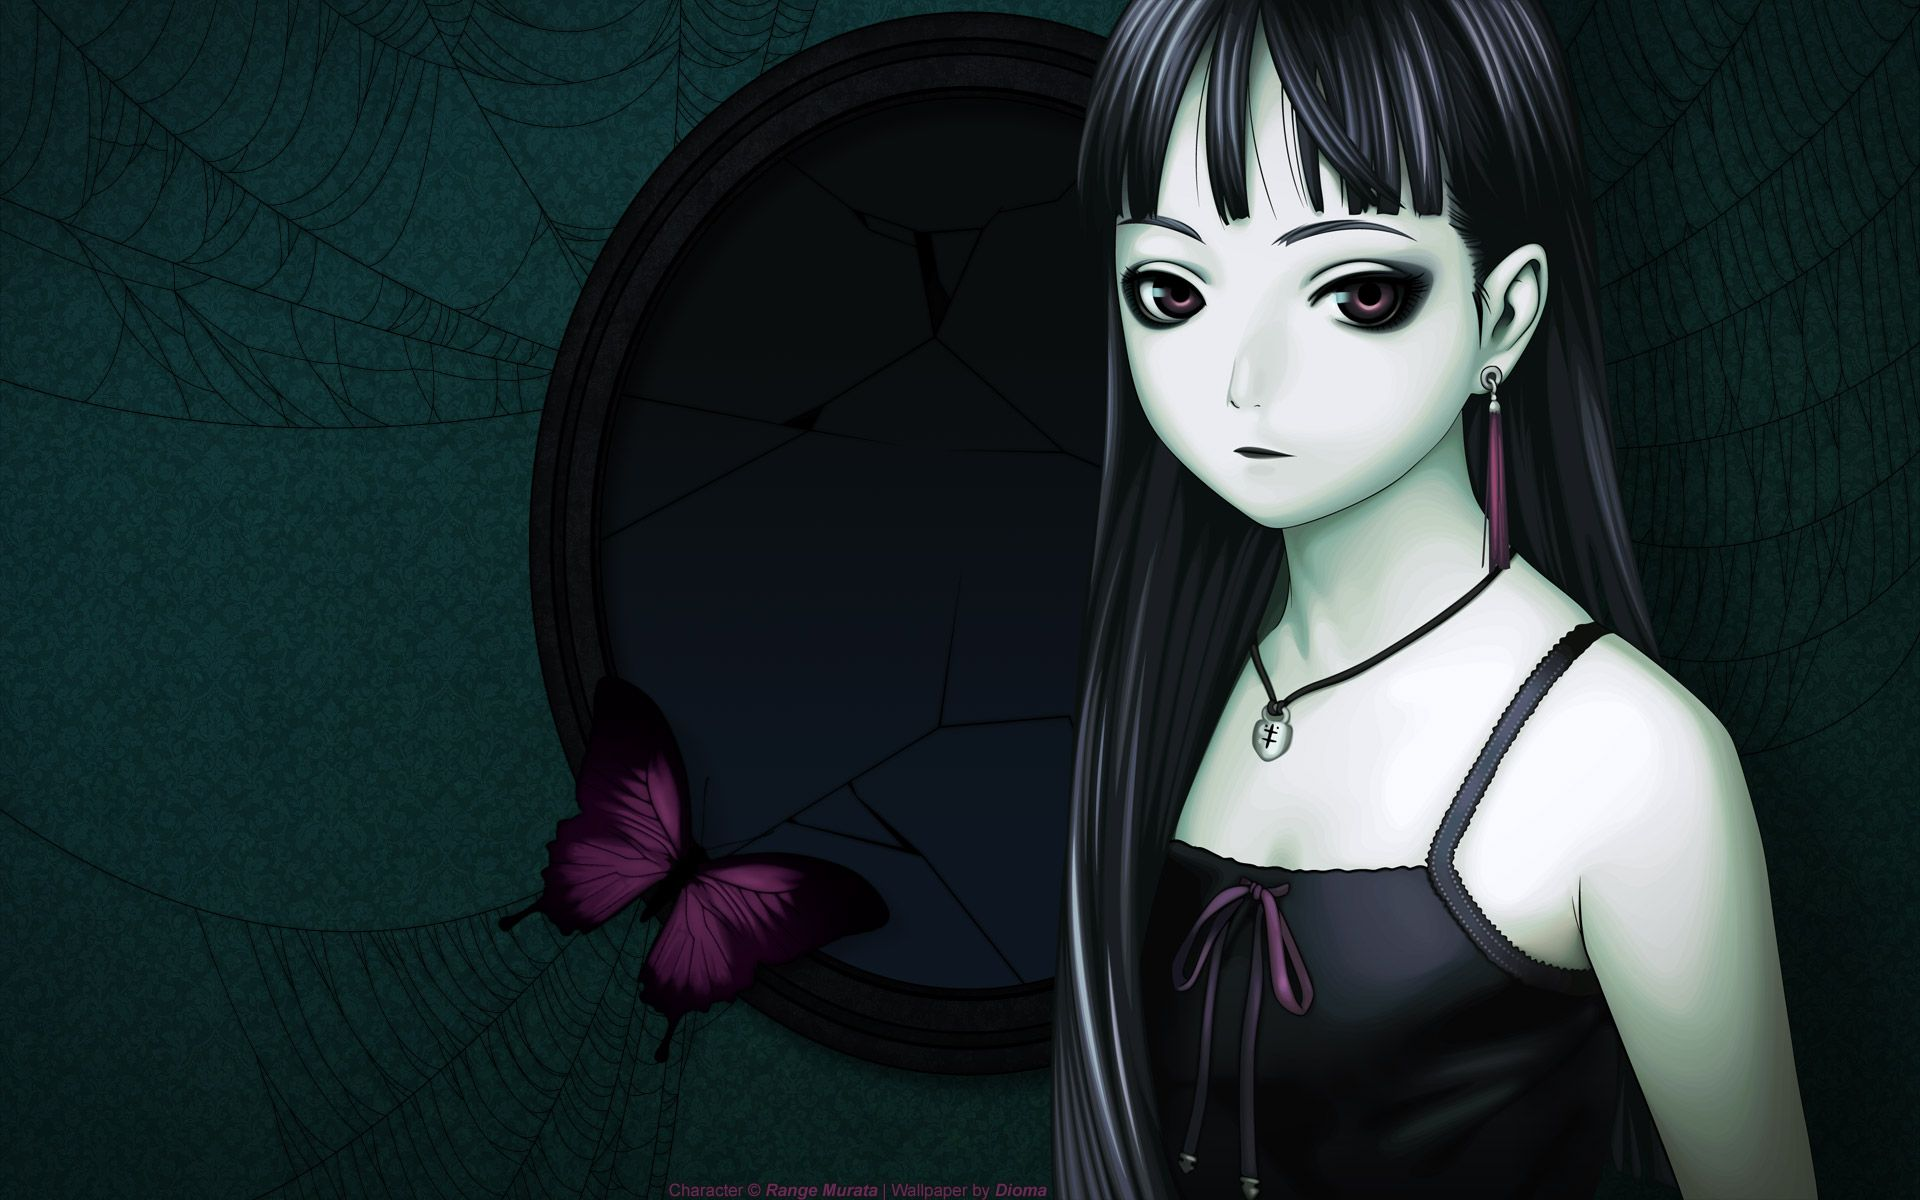 Download Anime Goth Girl Wallpaper 1920x1200 | Full HD ...